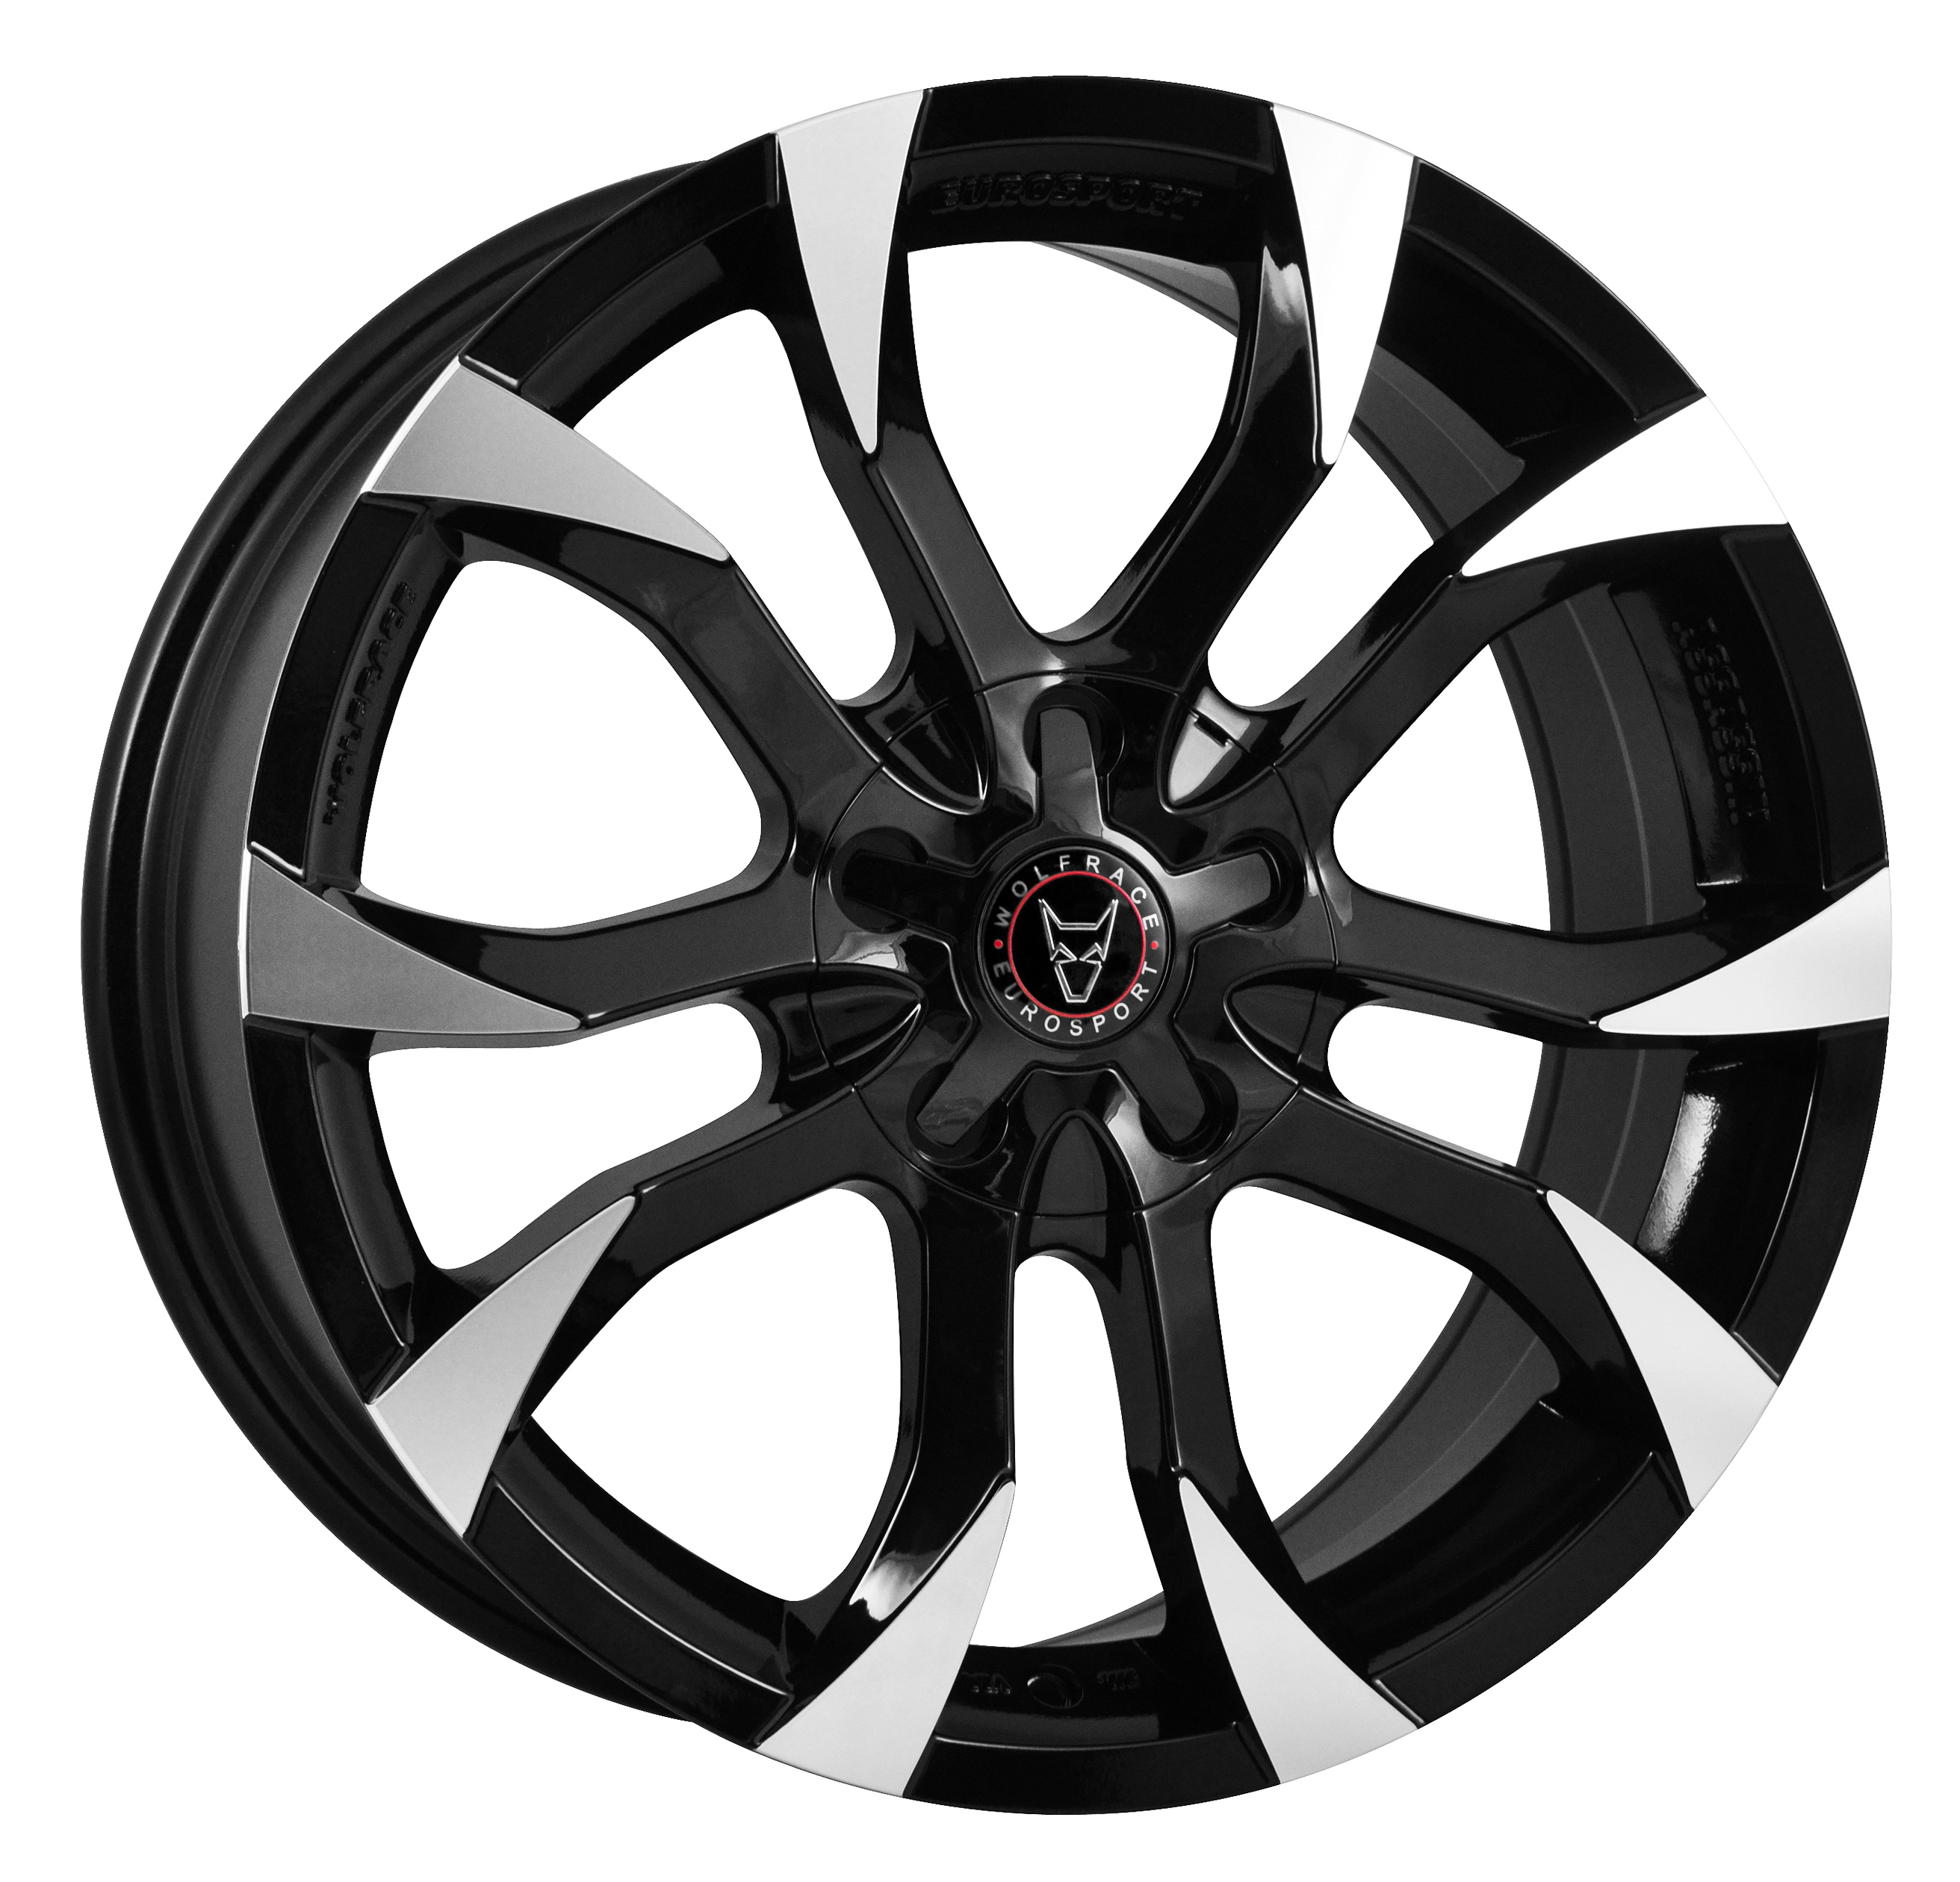 WOLFRACE EUROSPORT ASSASSIN 7x17 5x100/110 ET35 BLACK POLISHED